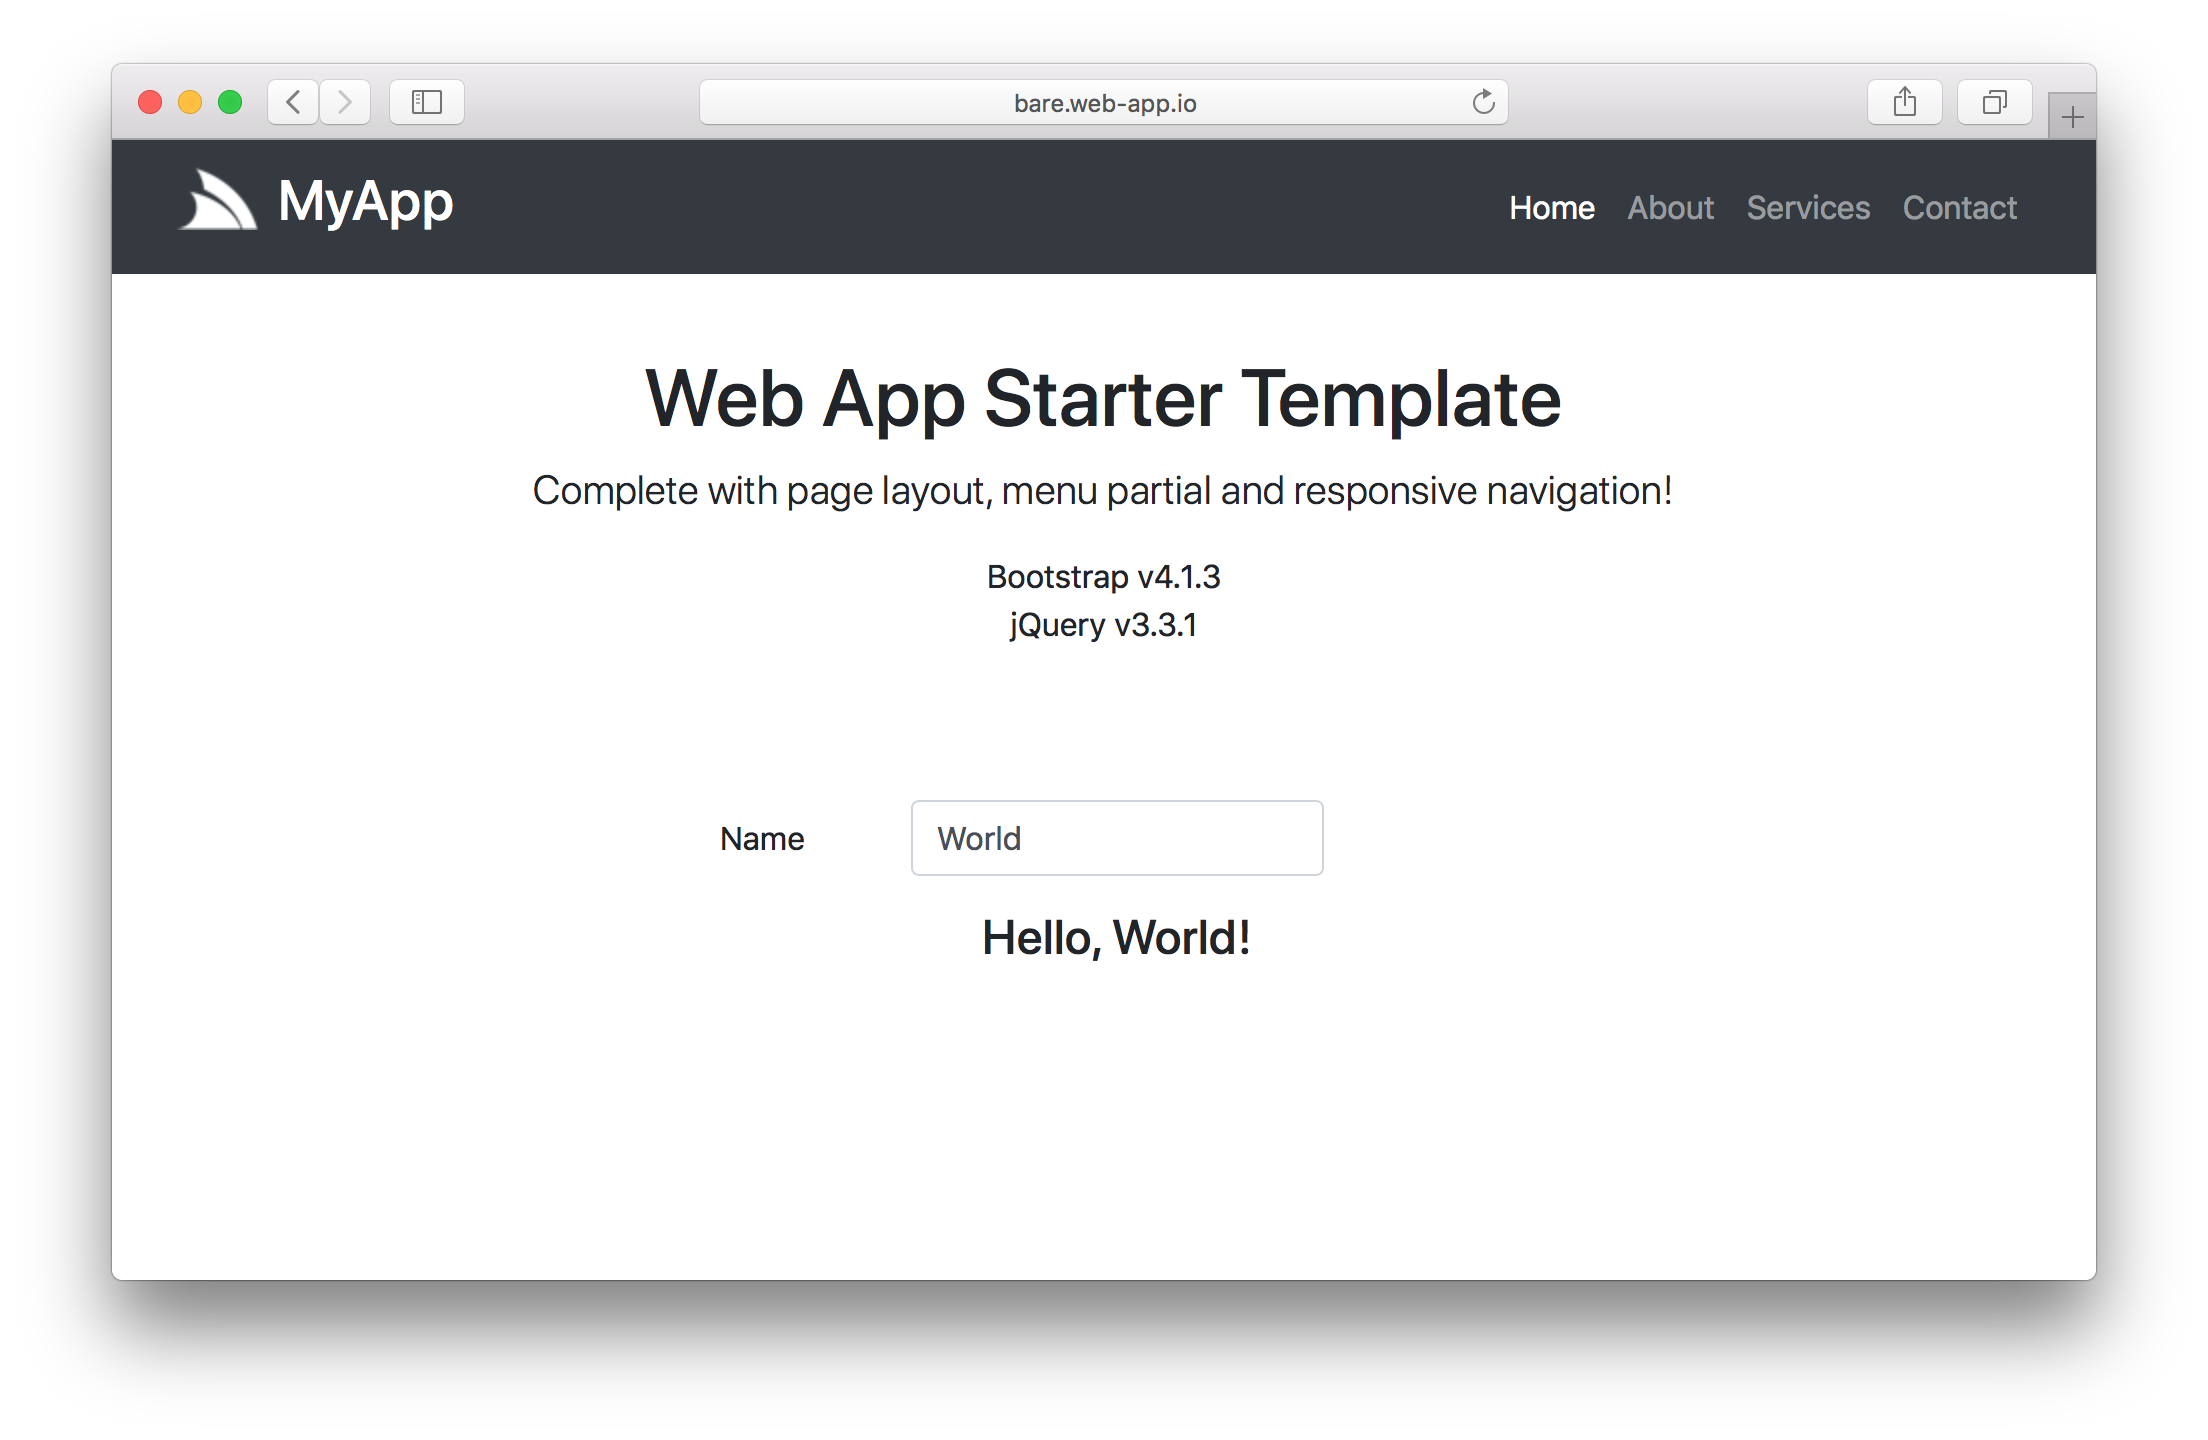 Bare WebApp screenshot